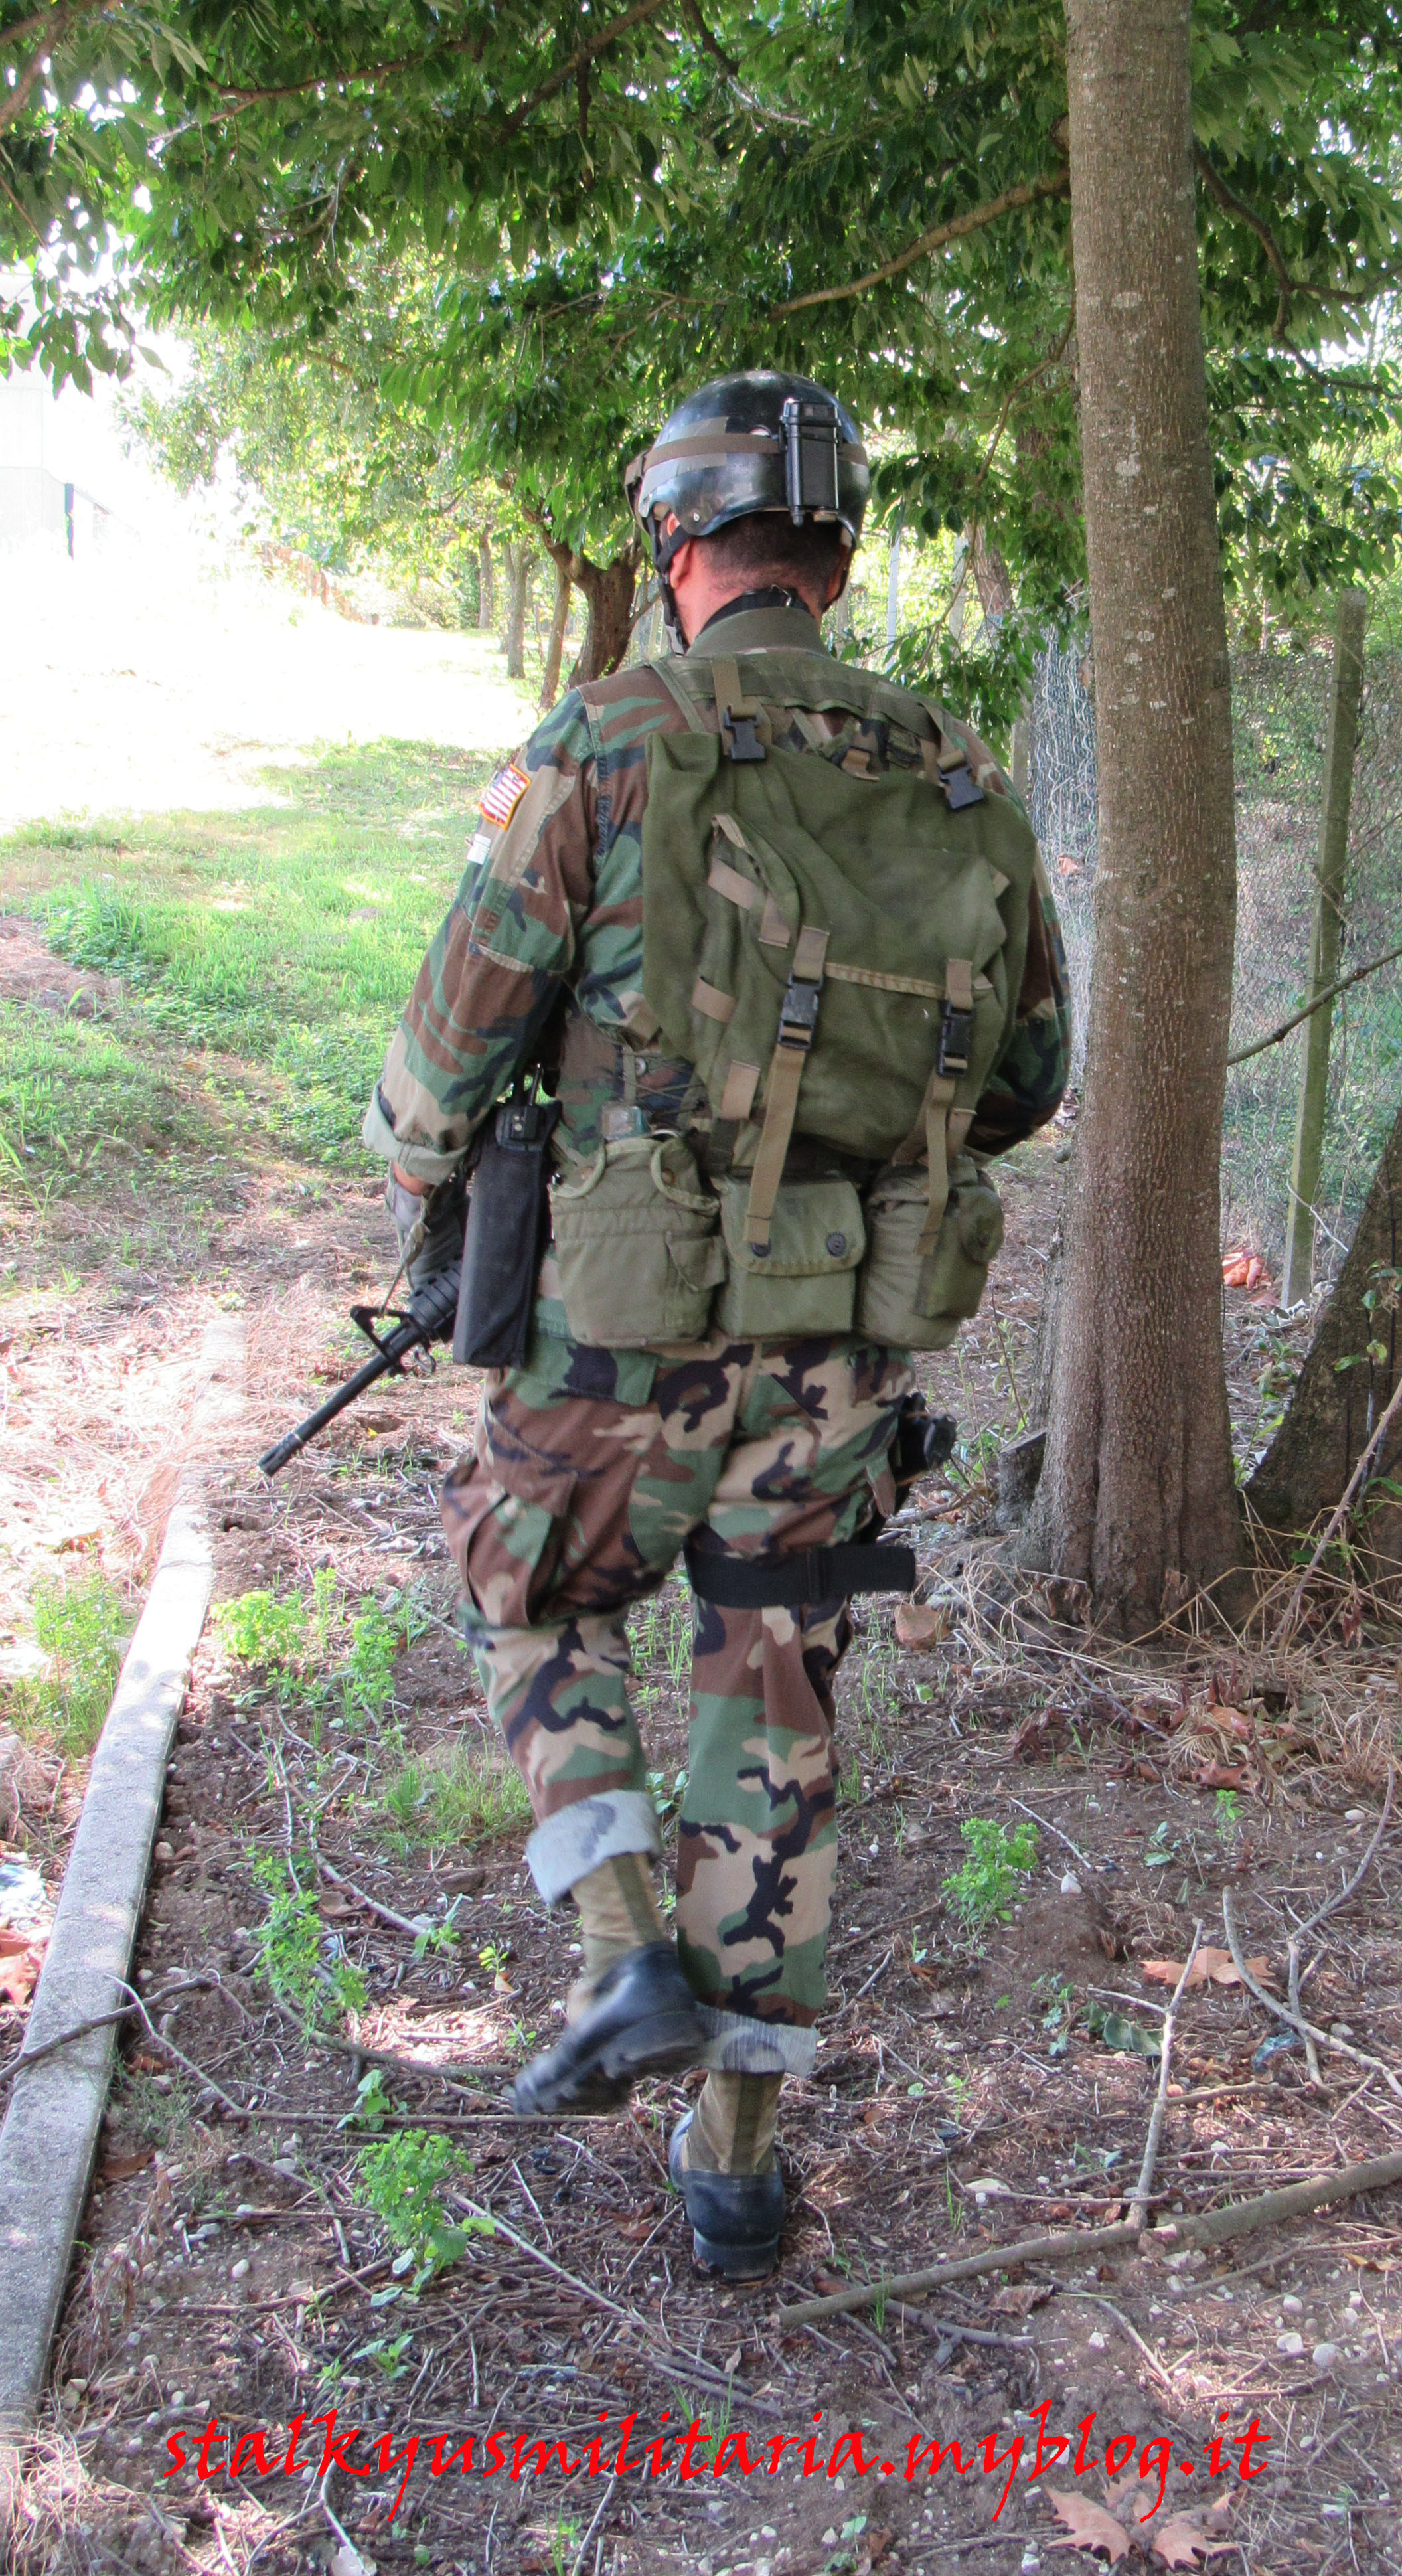 Delta Force Op Just Cause Panama 1989 Stalky Us Militaria